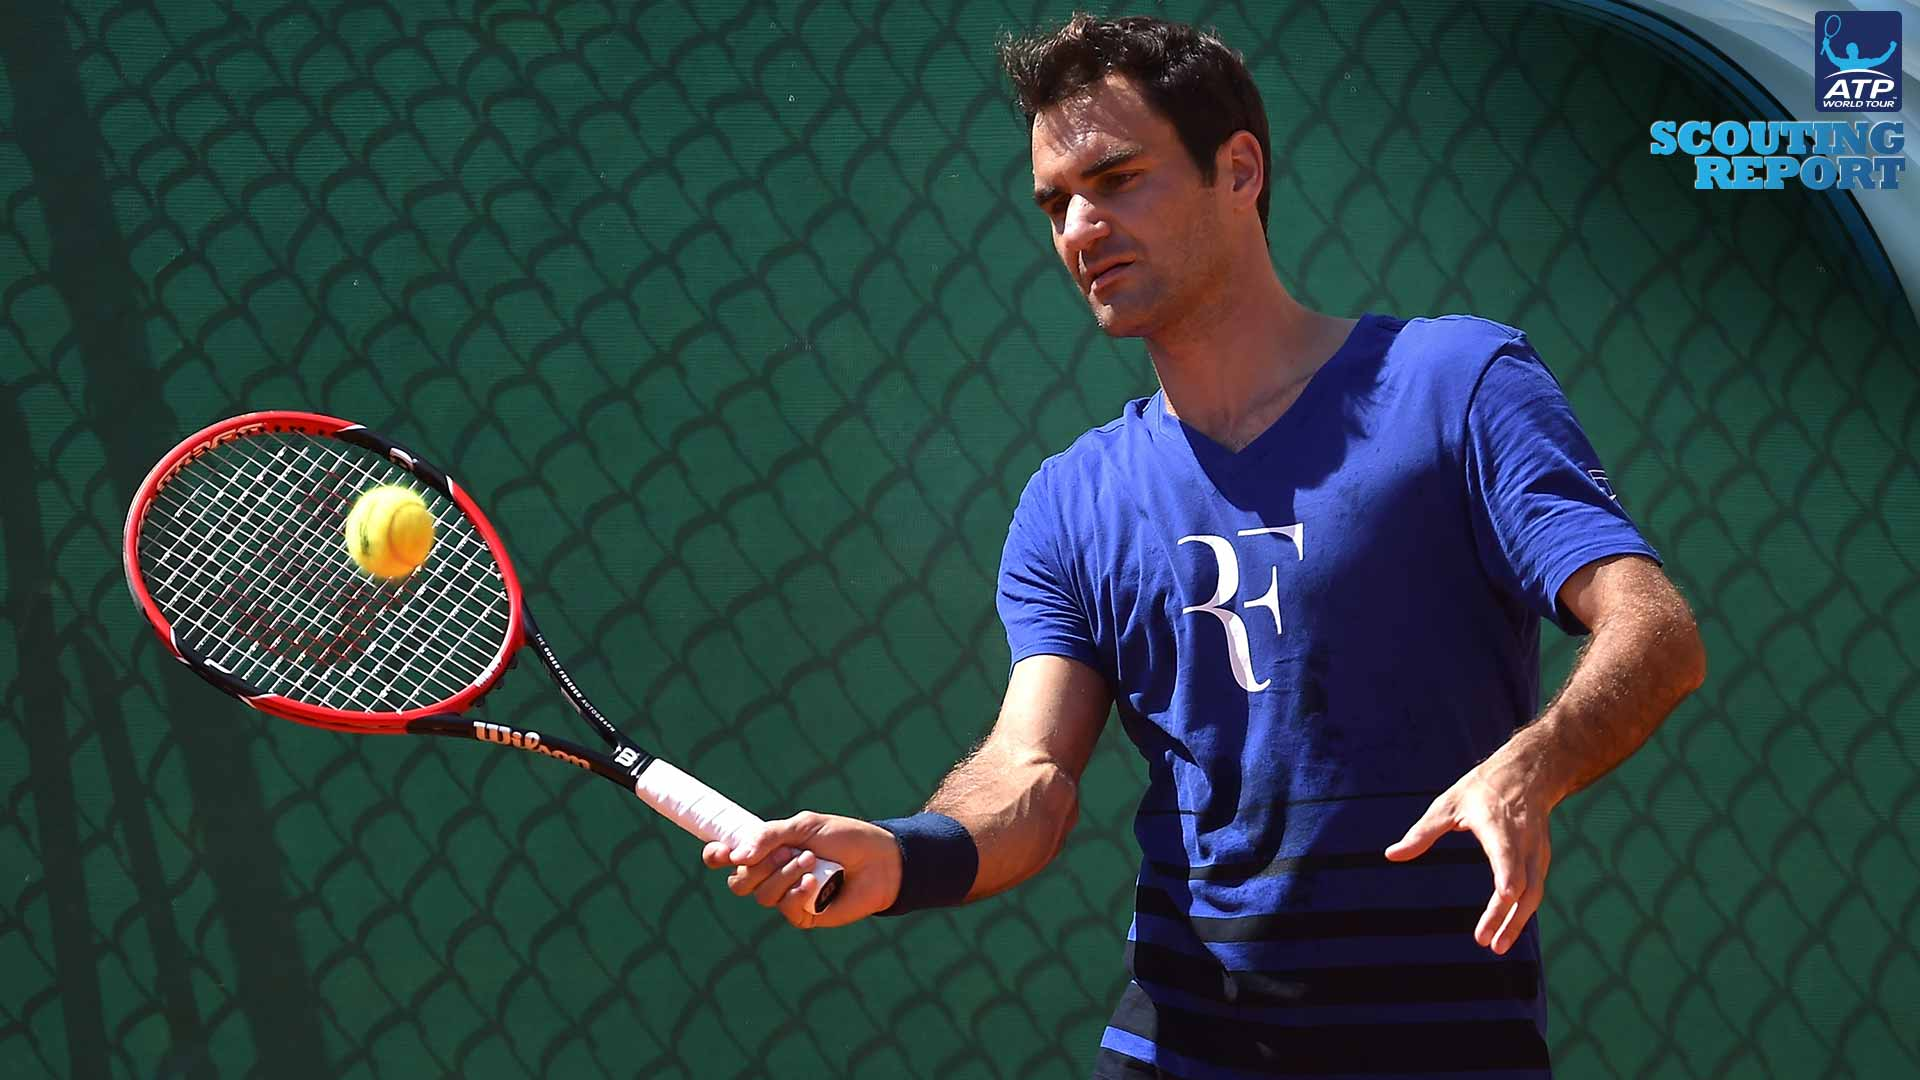 Federer Scouting Report Rome 2016 | ATP World Tour | Tennis